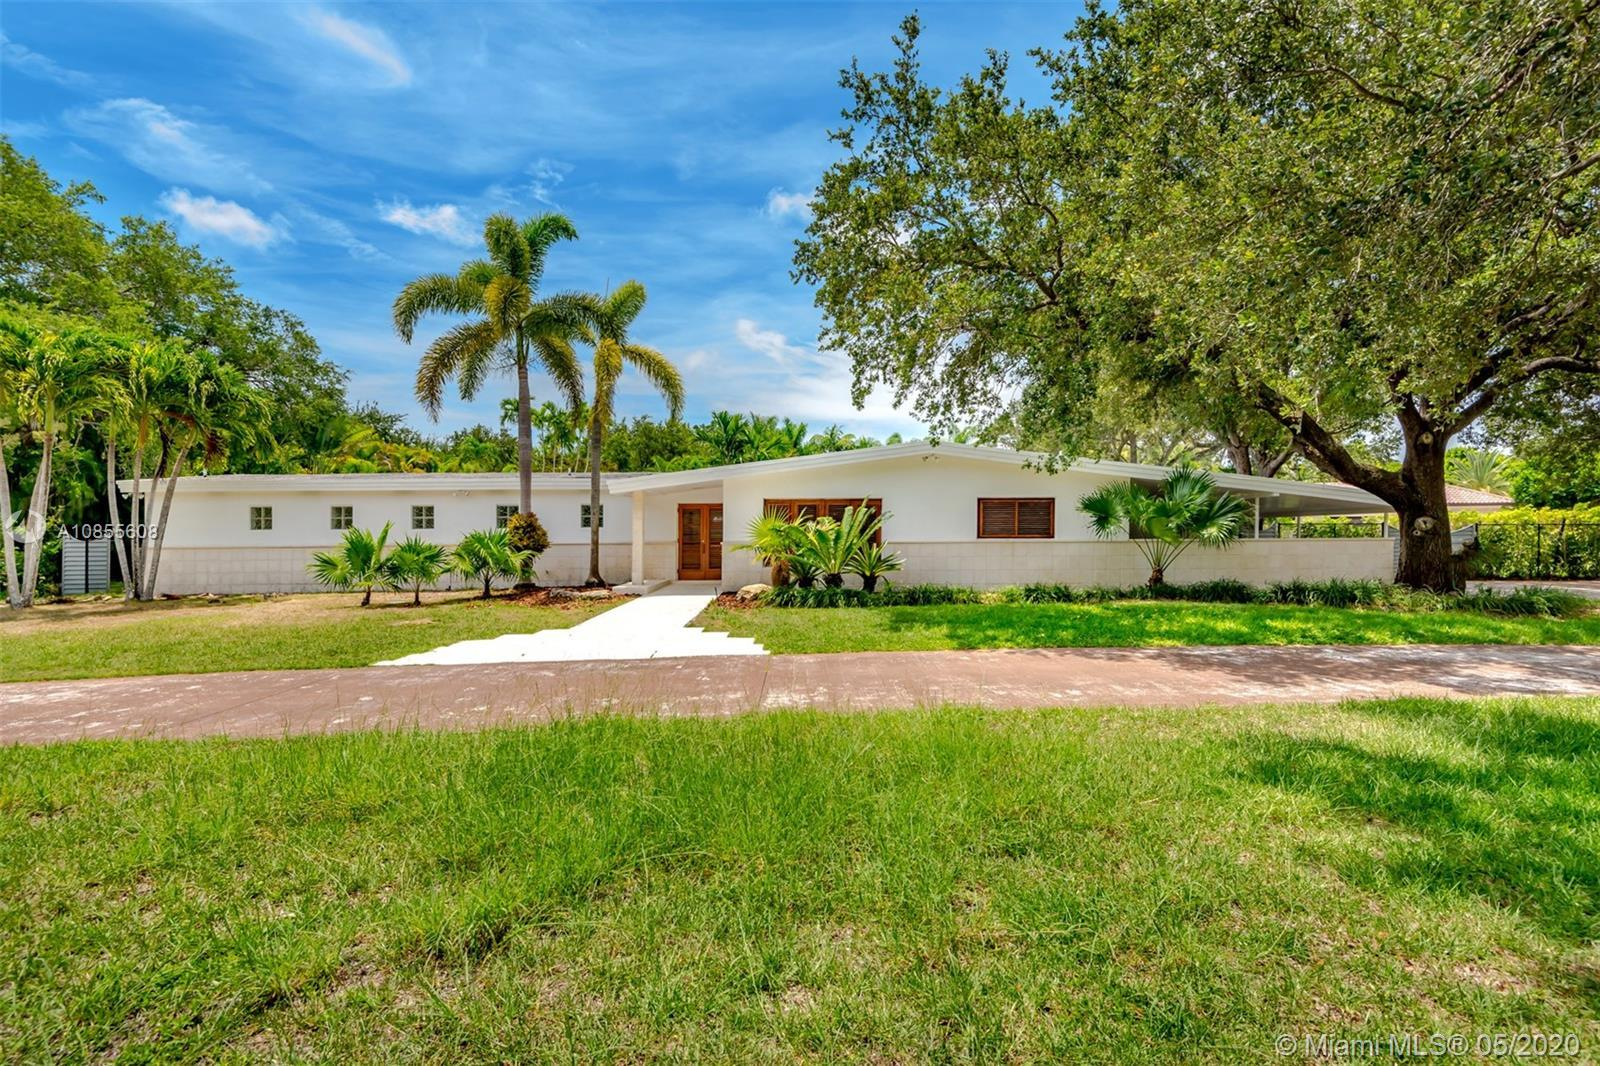 Beautiful Pinecrest home perfect for families with 4 bedrooms and 4 bathrooms + staff's quarter, loc